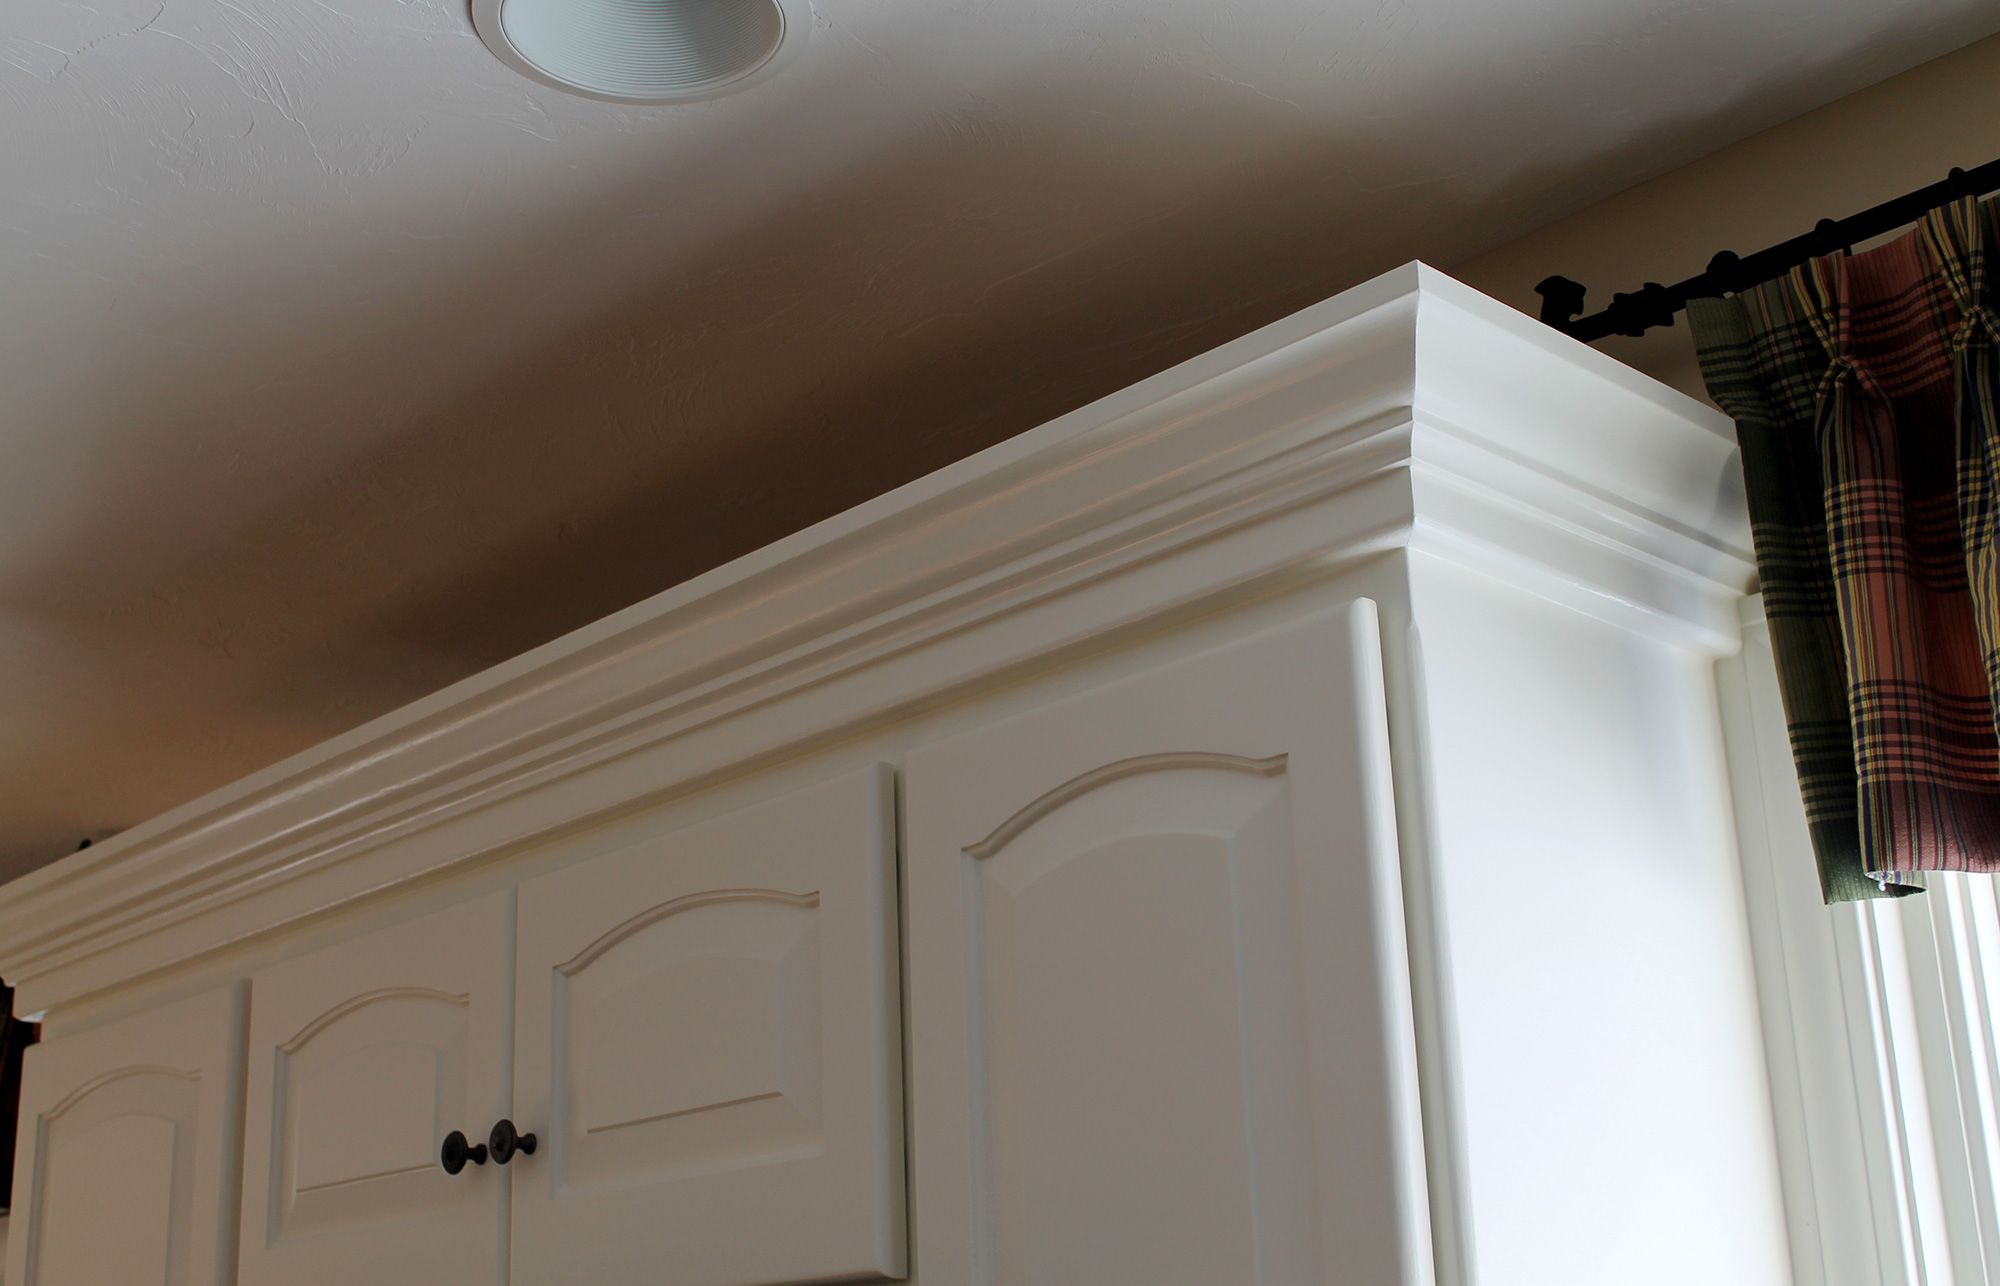 Pin By John K On Cabinets Kitchen Cabinet Crown Molding Cabinets With Crown Molding Kitchen Cabinet Molding